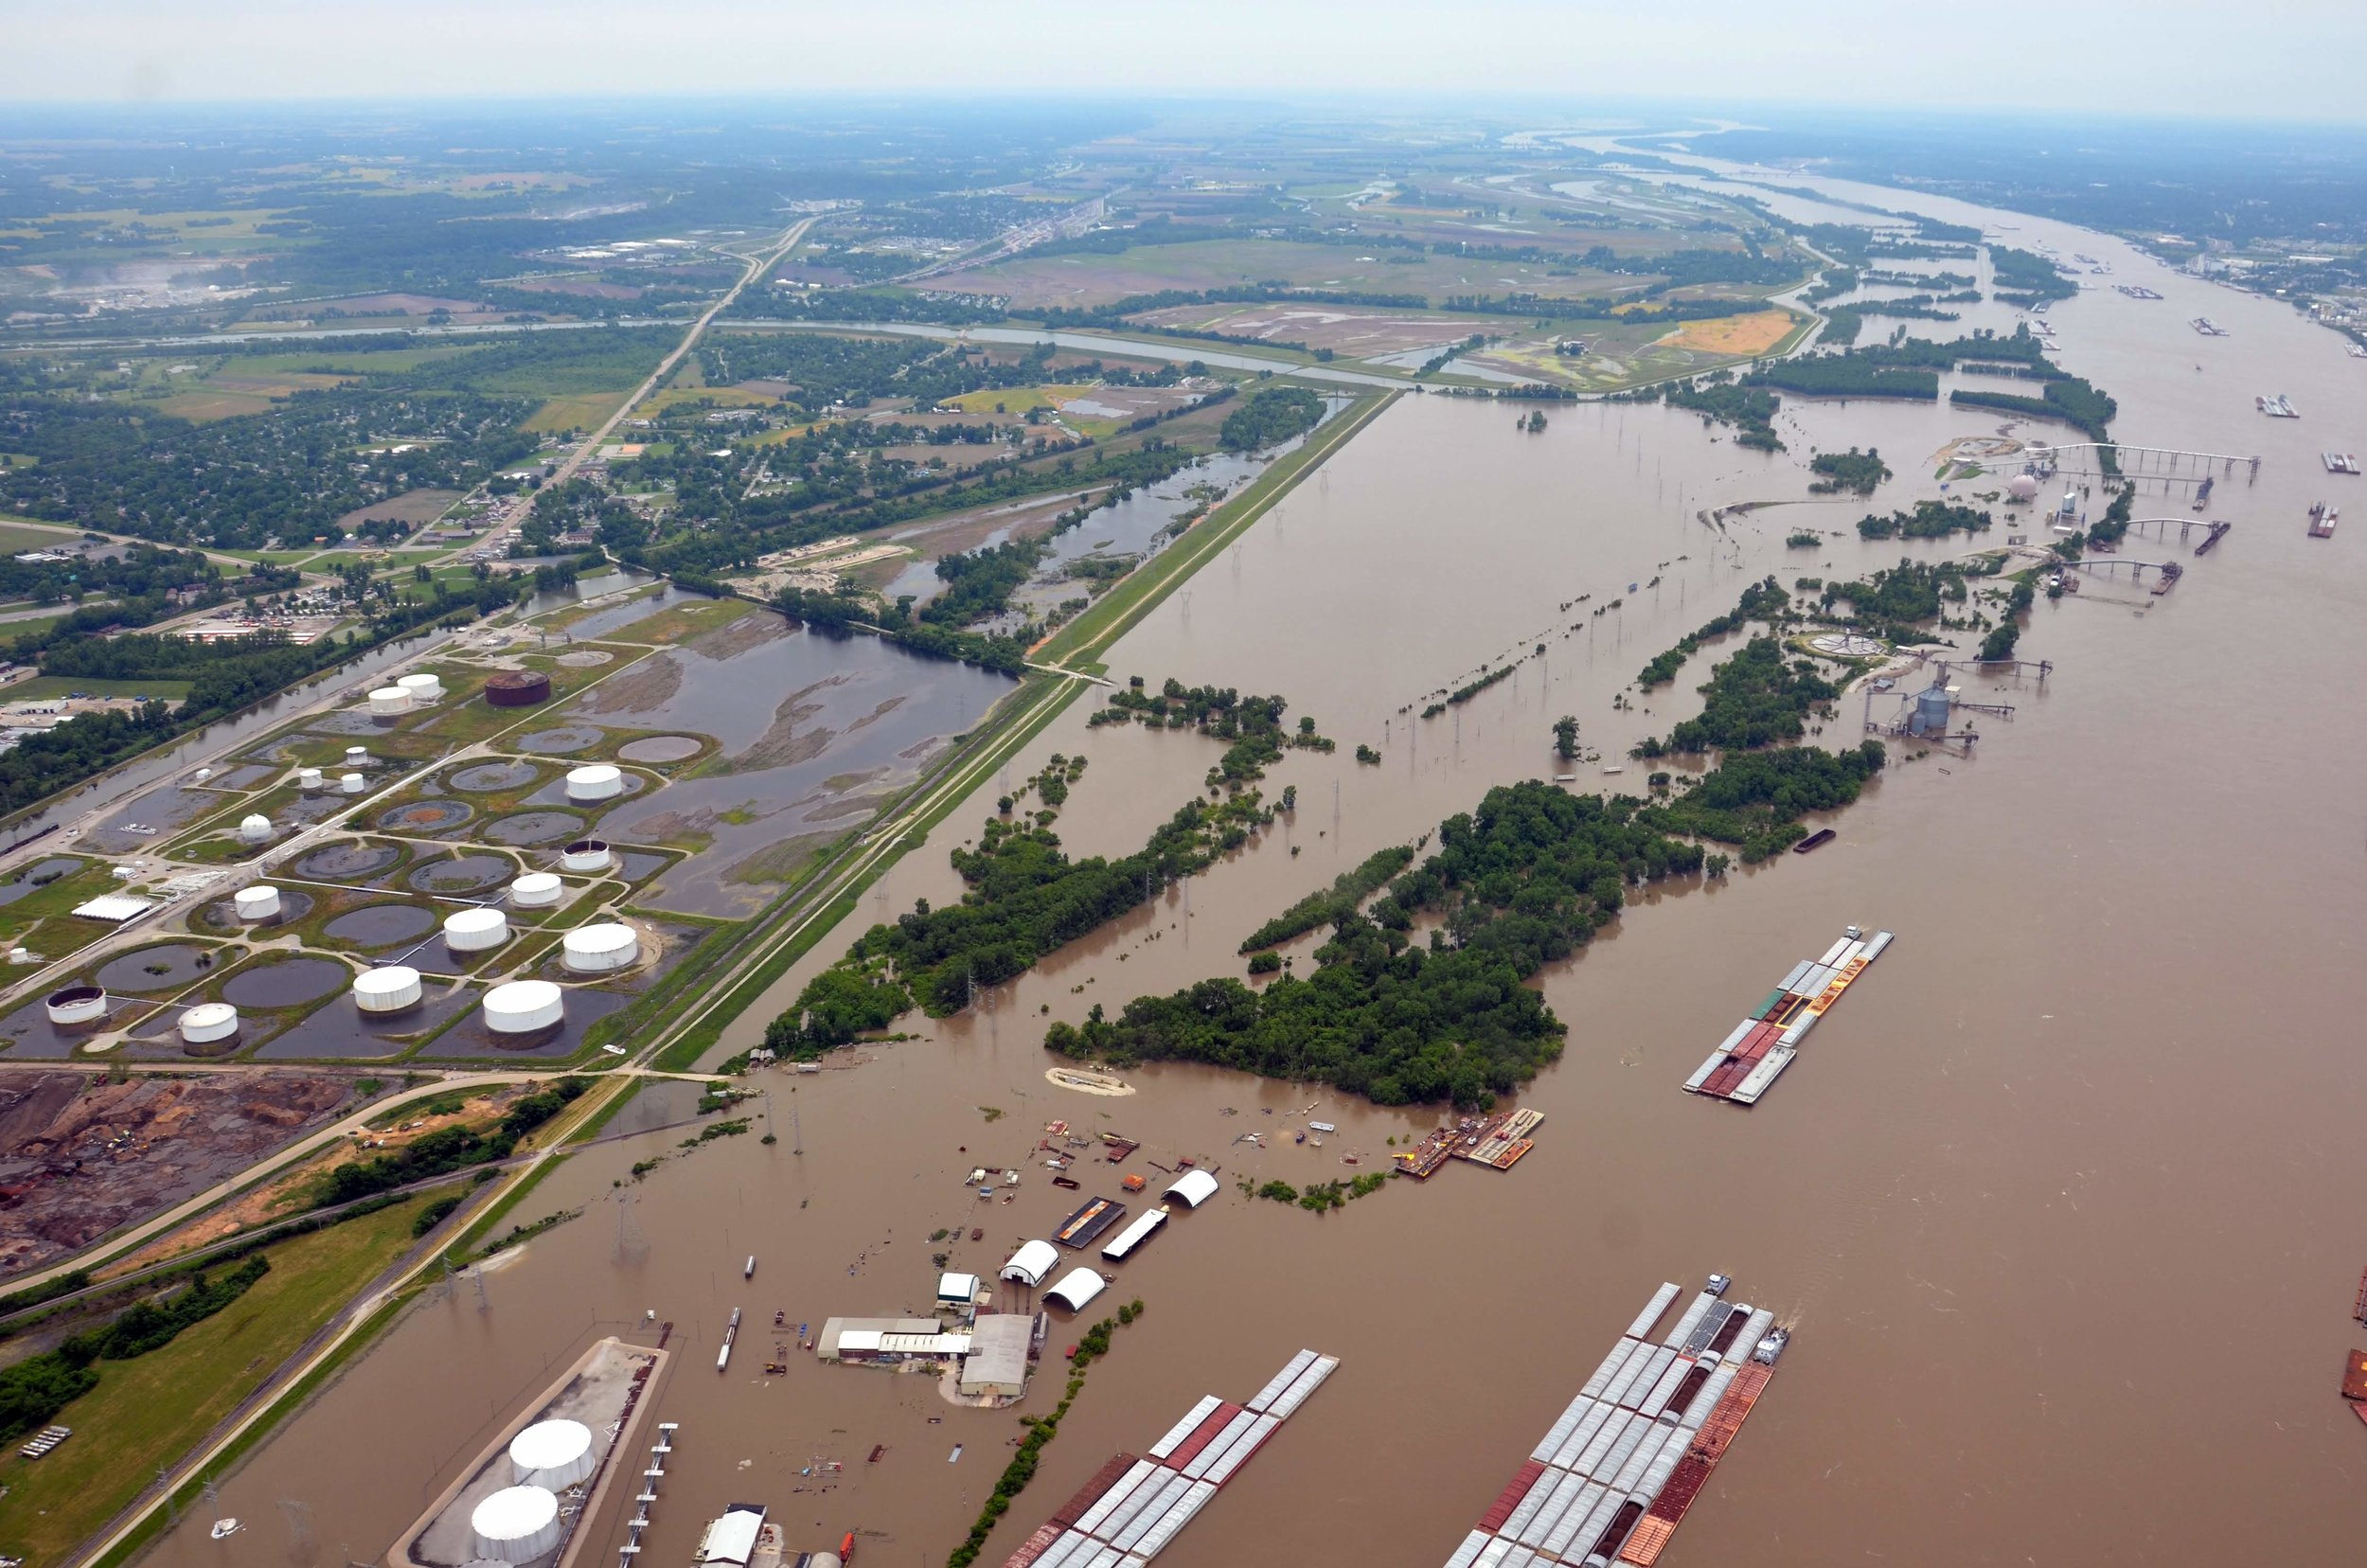 Flooded Mississippi River near downtown St. Louis, Missouri | Photo taken on June 3 by Derek Hoeferlin